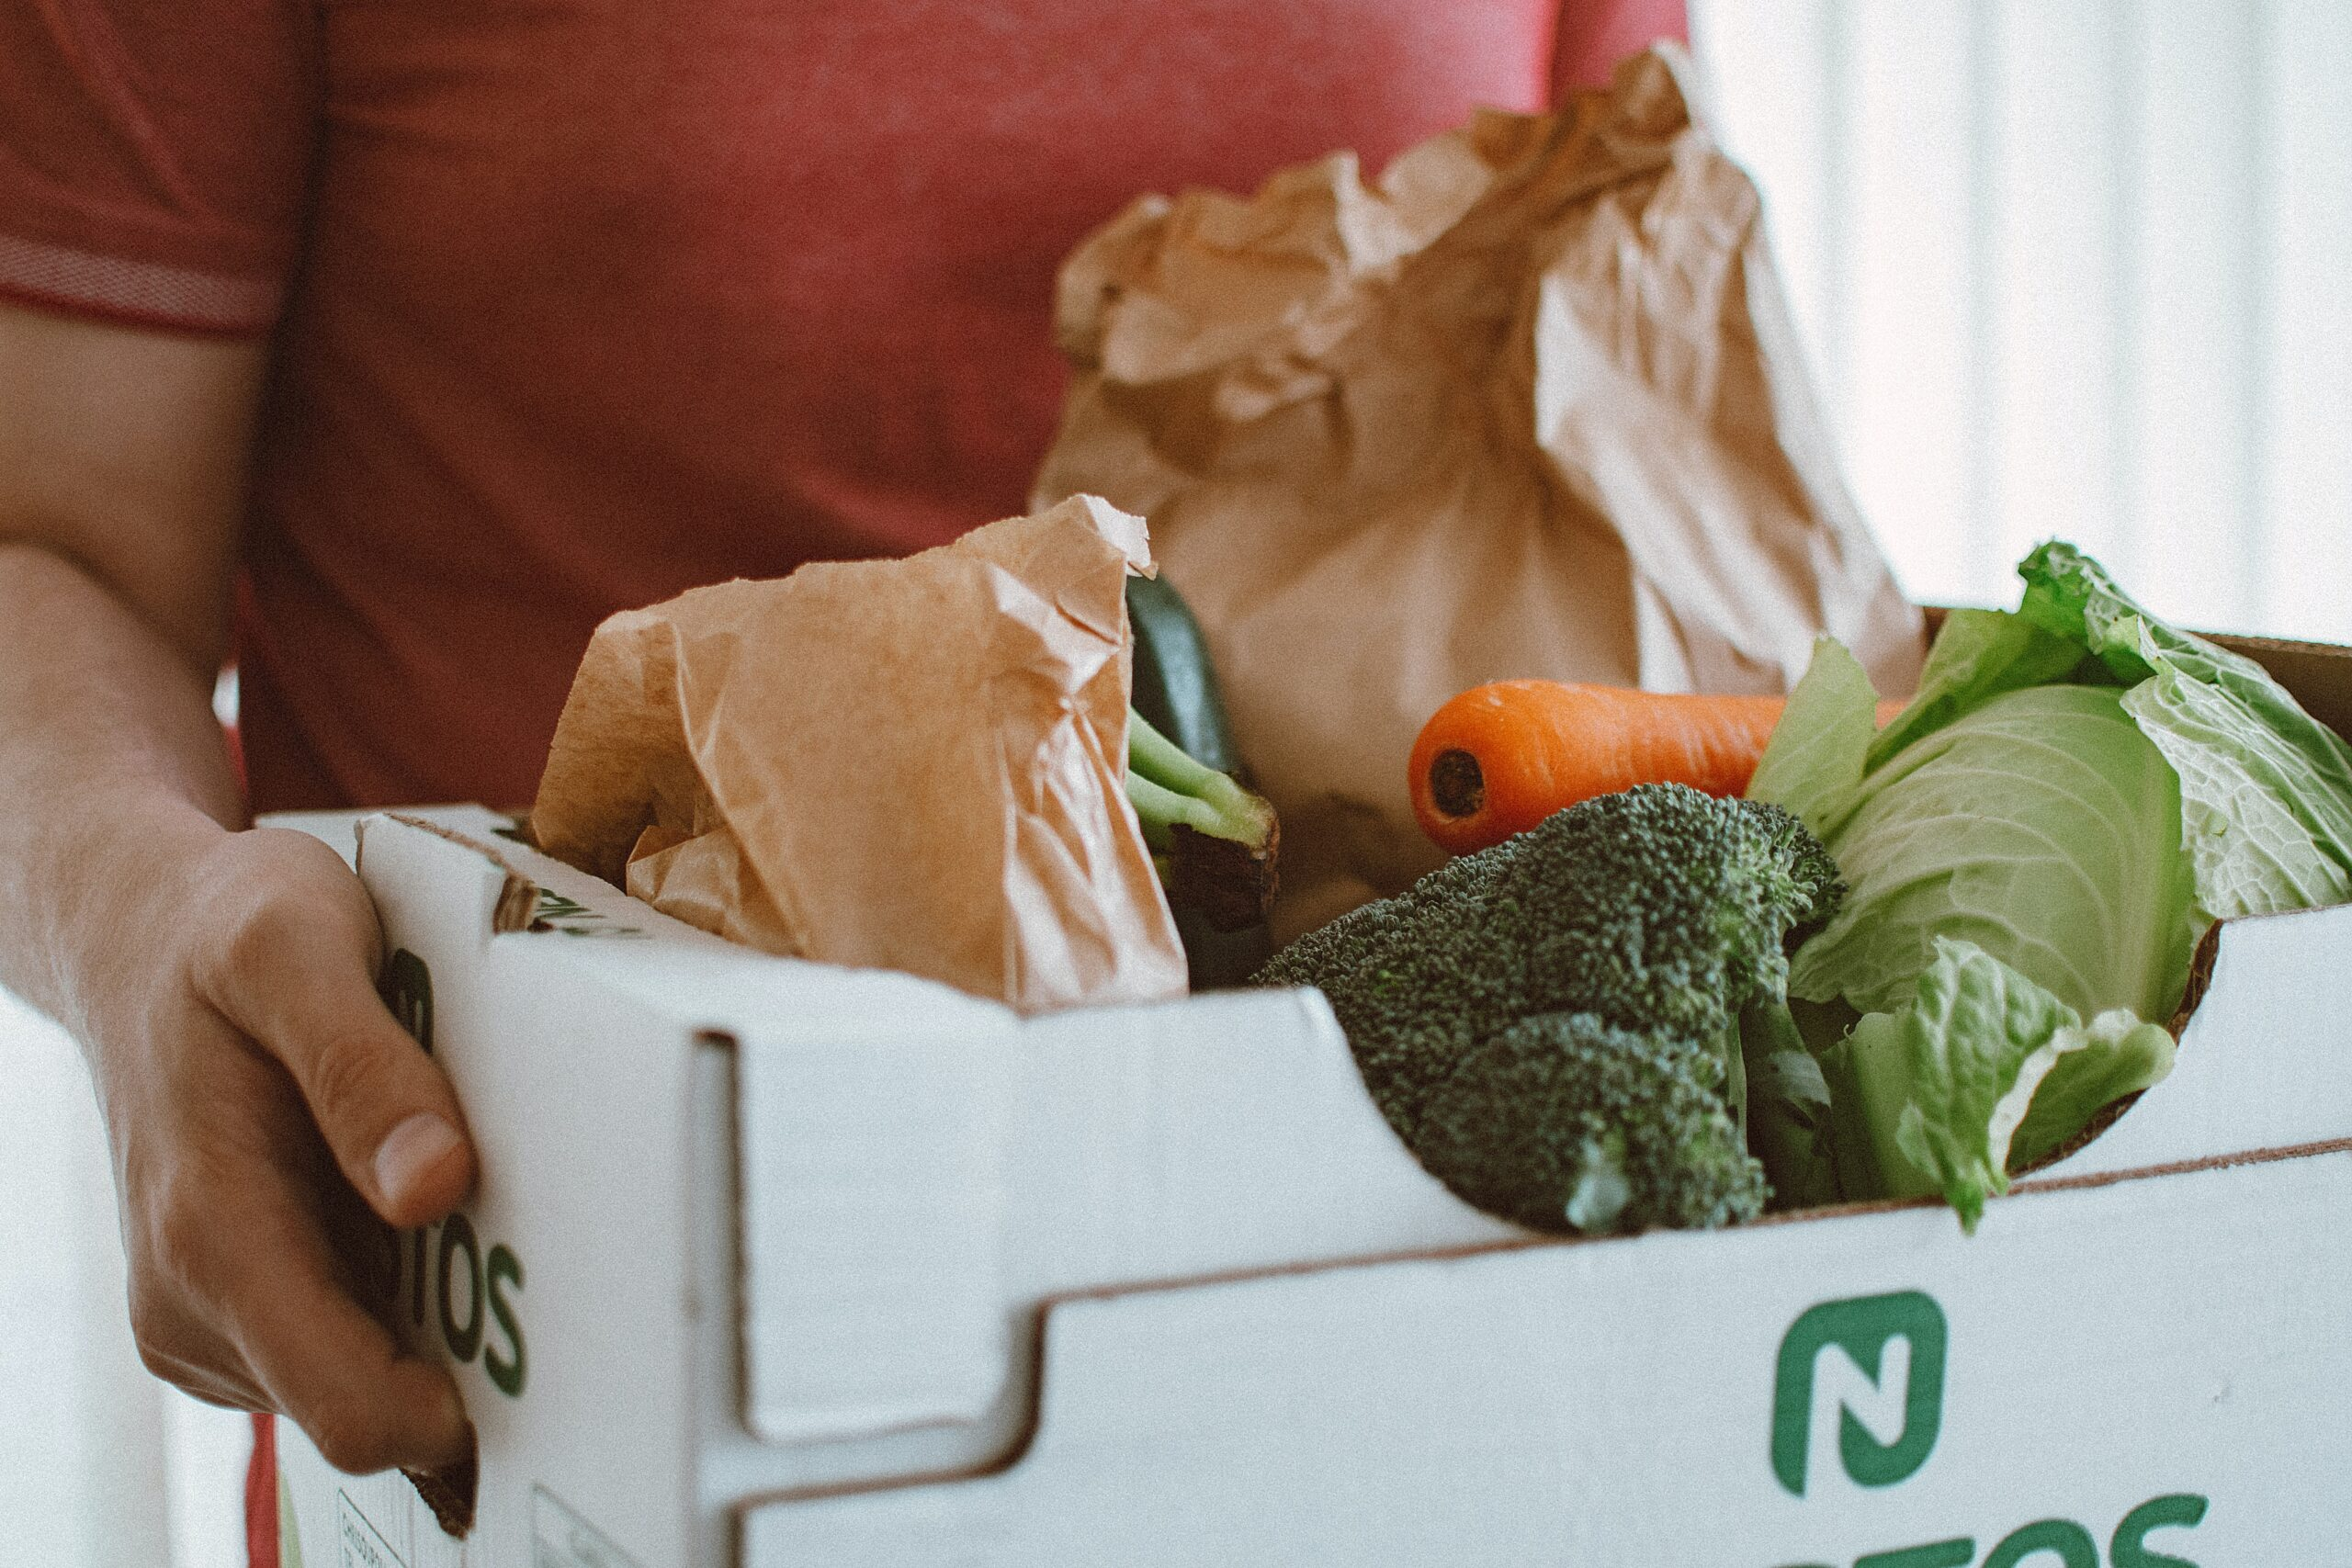 close up of vegetable in CSA box to reflect plant-based eating